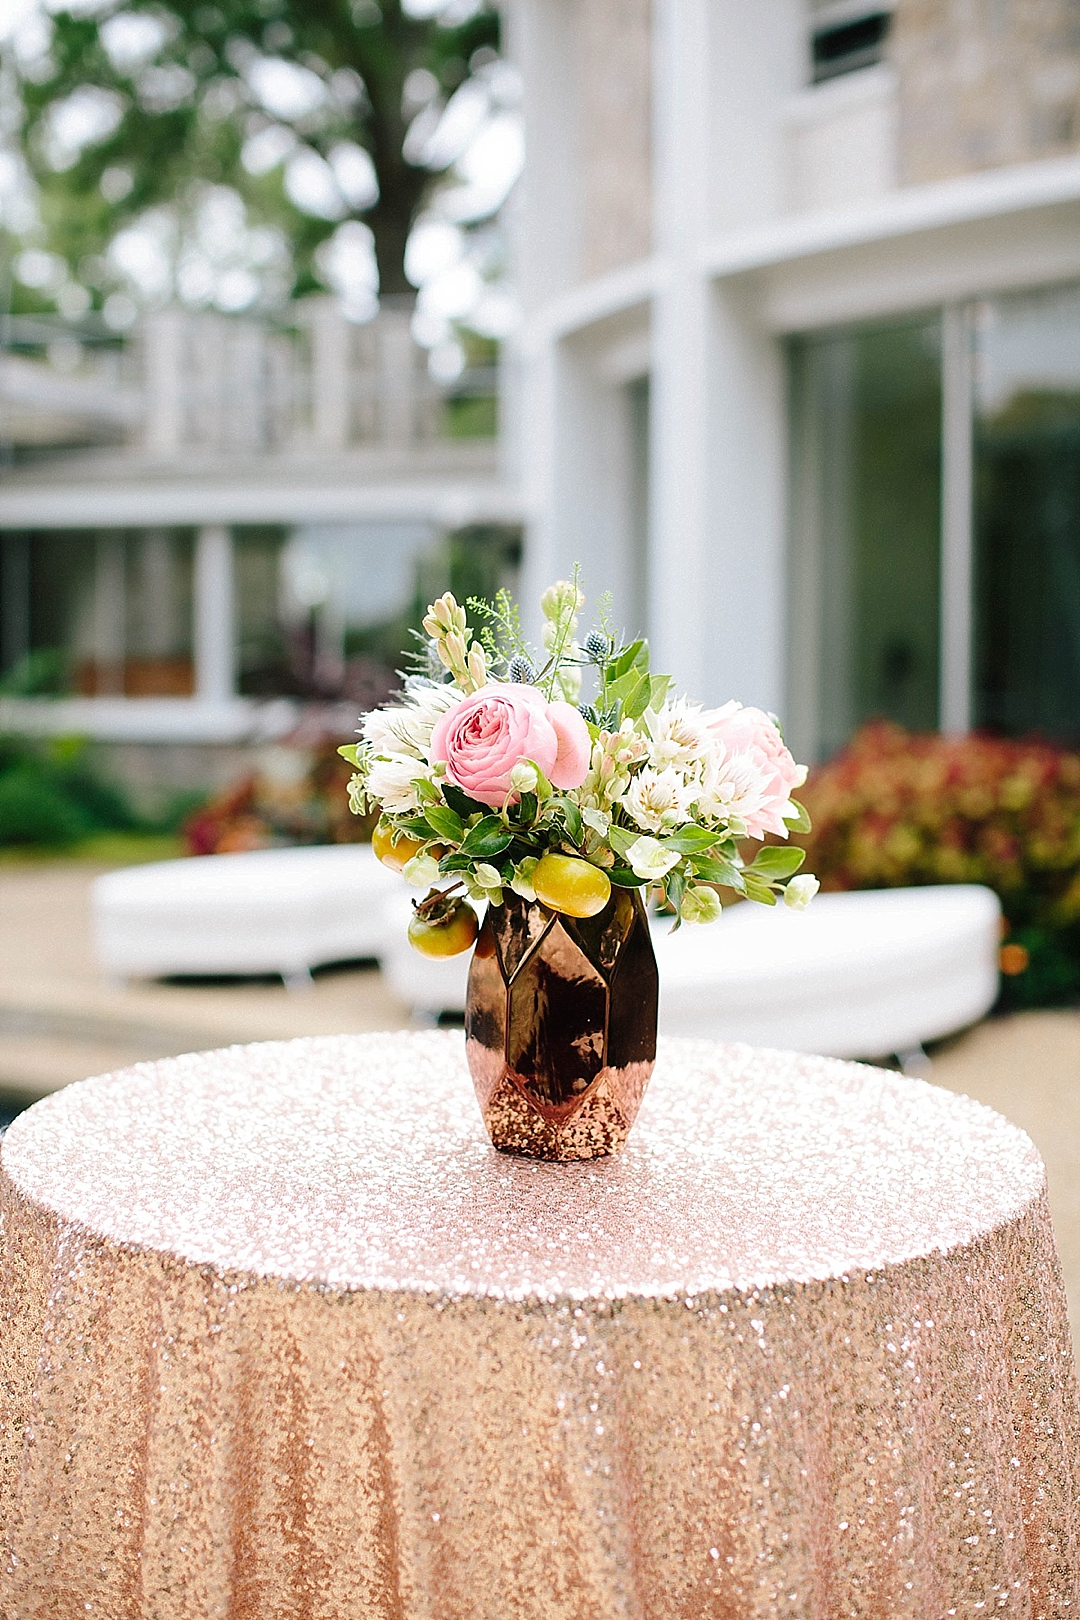 davids bridal for aisle society - centerpieces